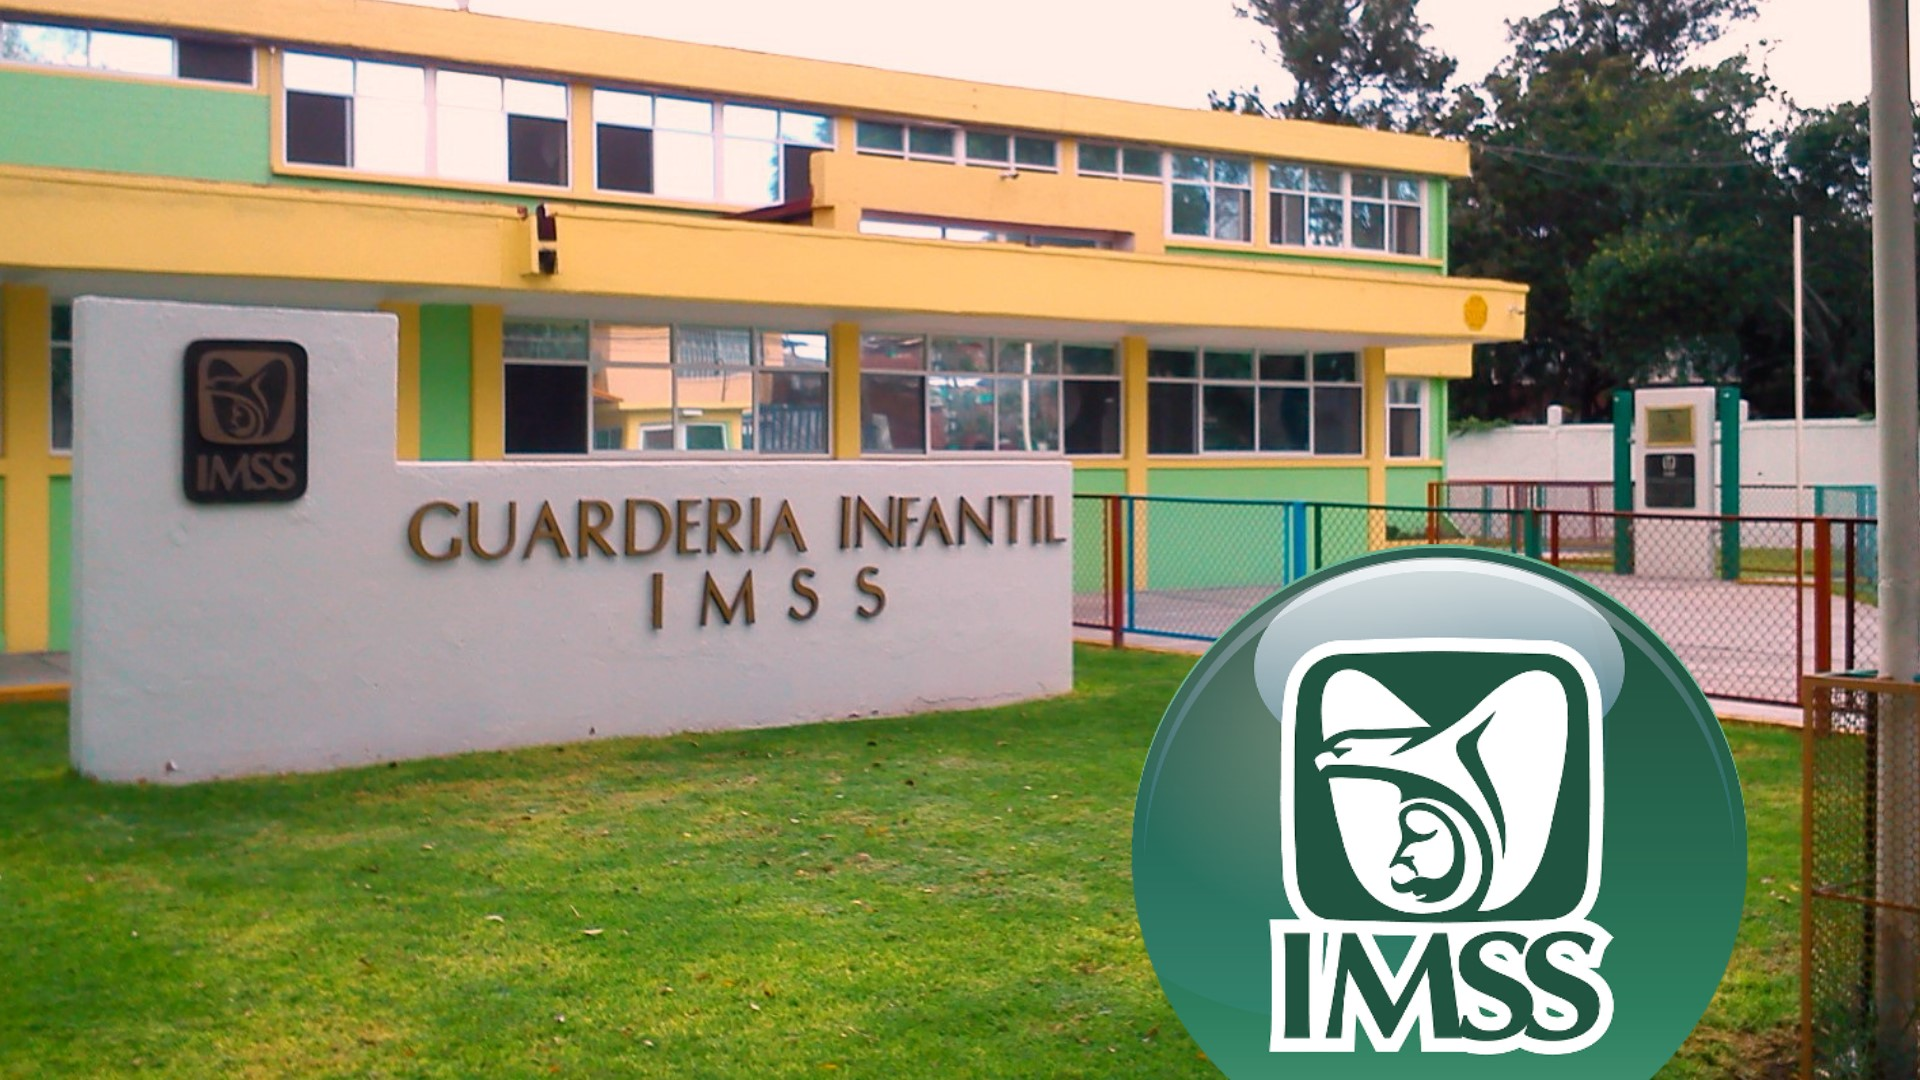 Requisitos para inscripción guardería imss